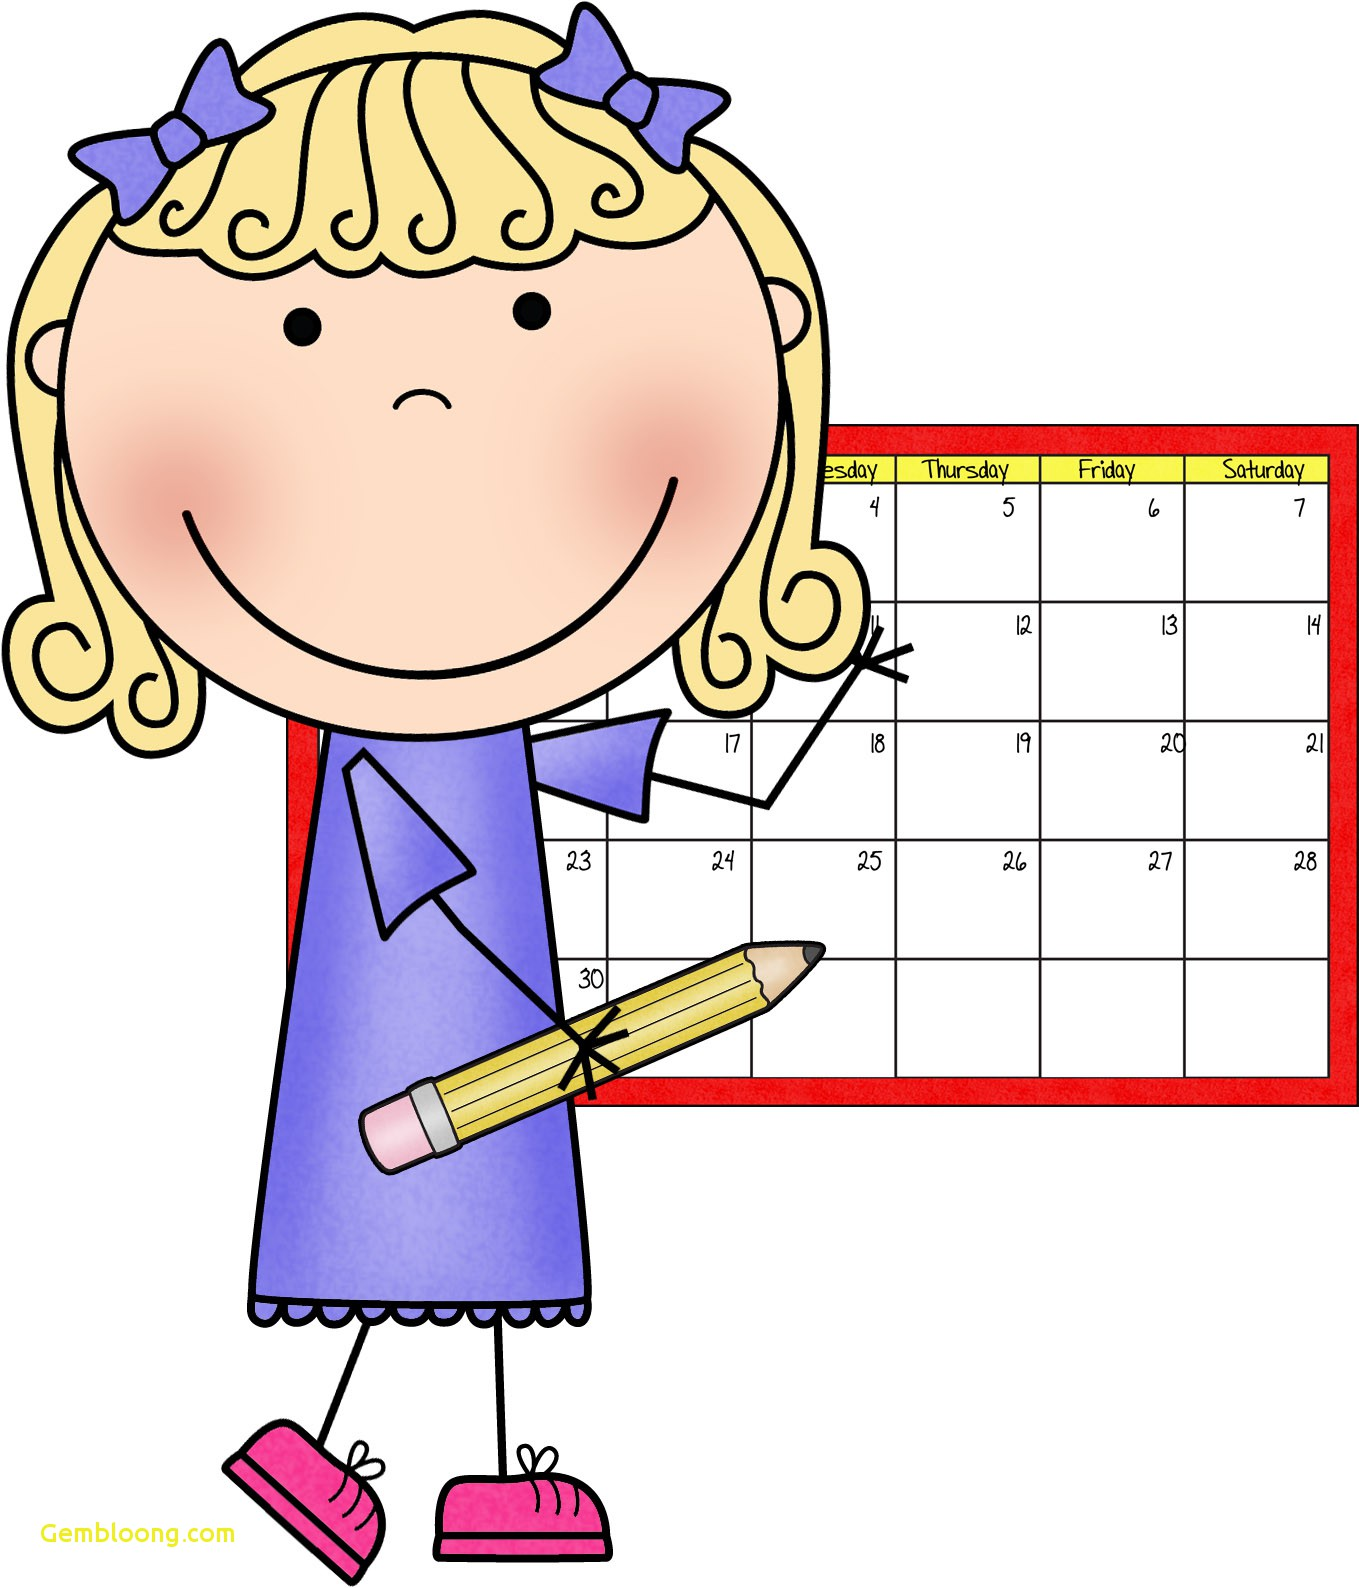 Calendar phelper clipart svg free library Calendar Helper Clipart Lovely Making Inclusion Work 10 tips to help ... svg free library